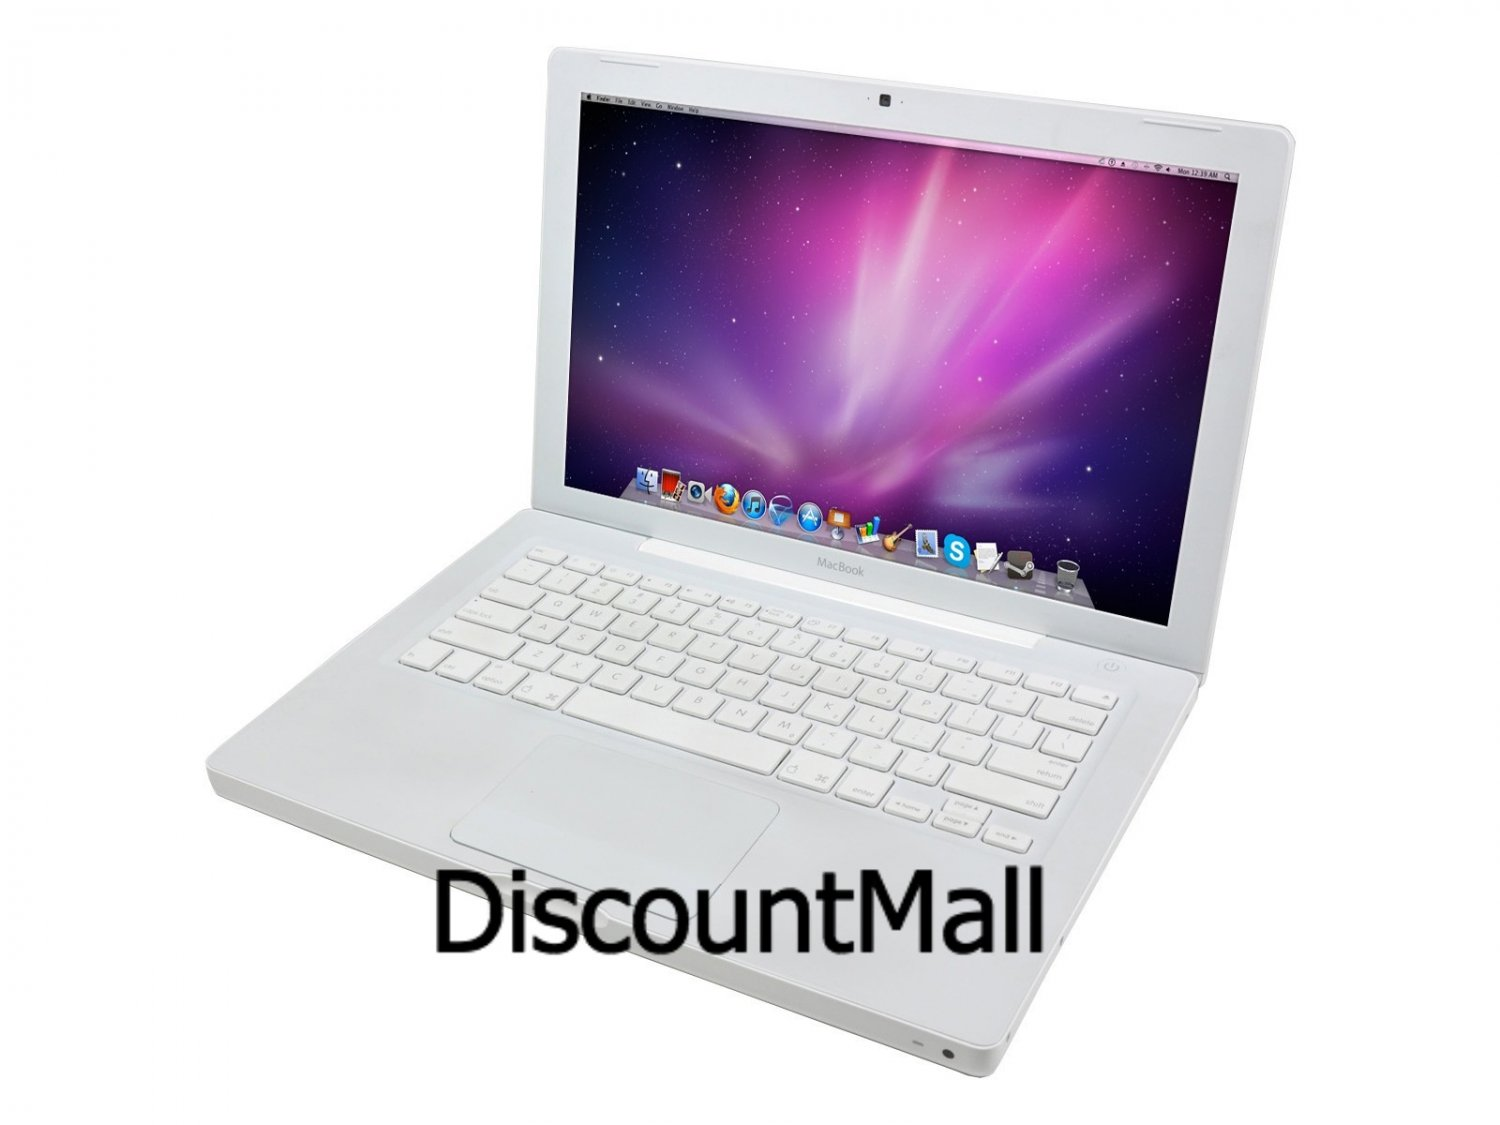 Apple MacBook Core2Duo White Computer 2.16GHz Loaded Office 11 and More!